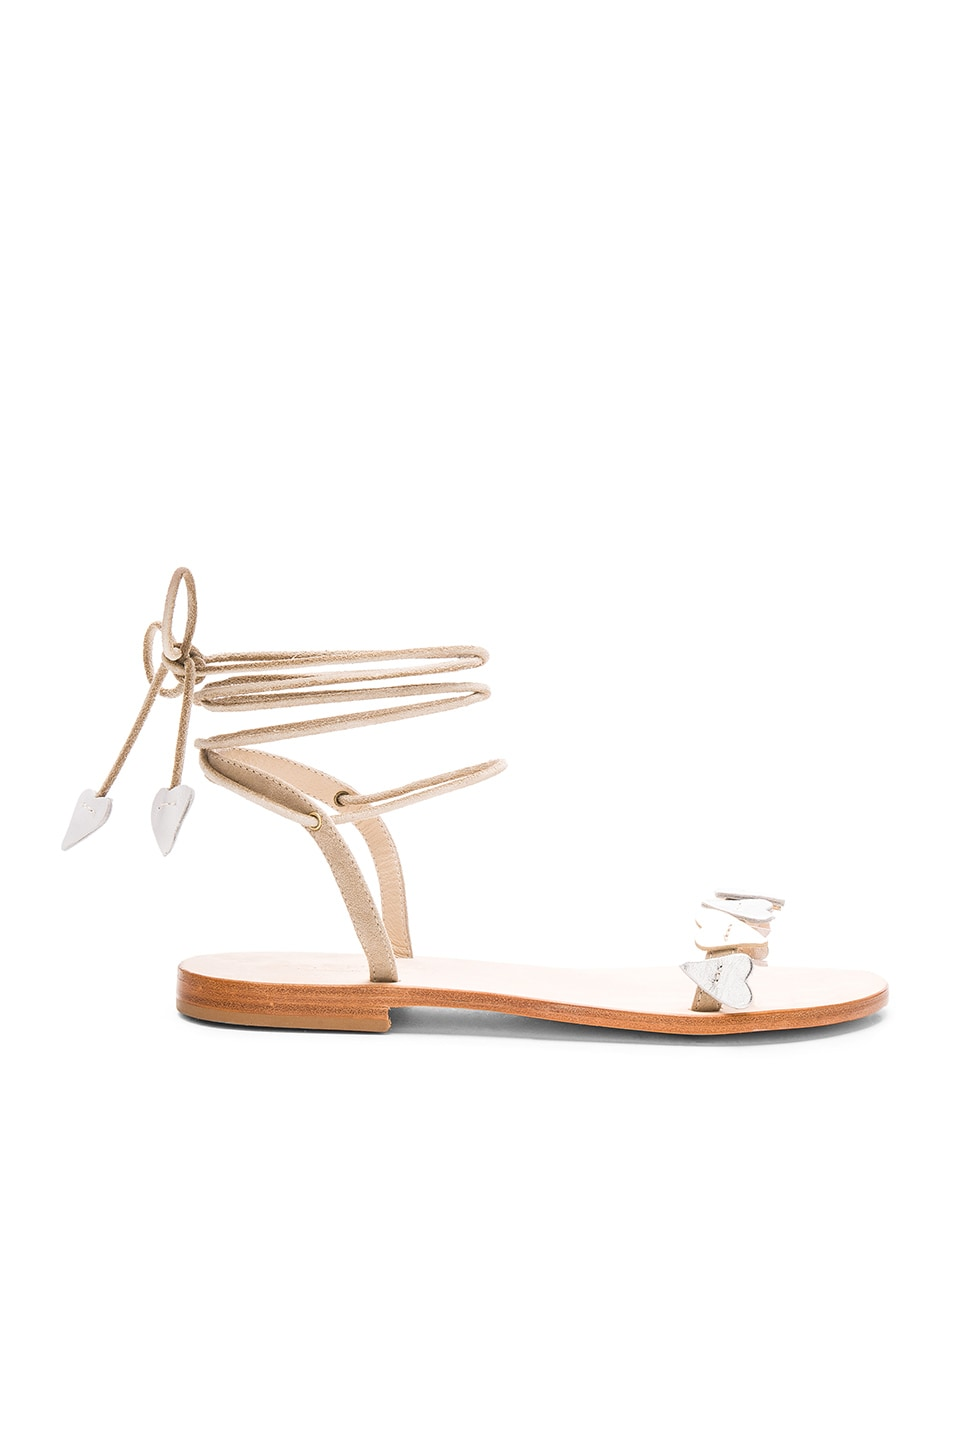 CoRNETTI Scoglio Sandal in Beige Suede with Silver Gold & White Hearts